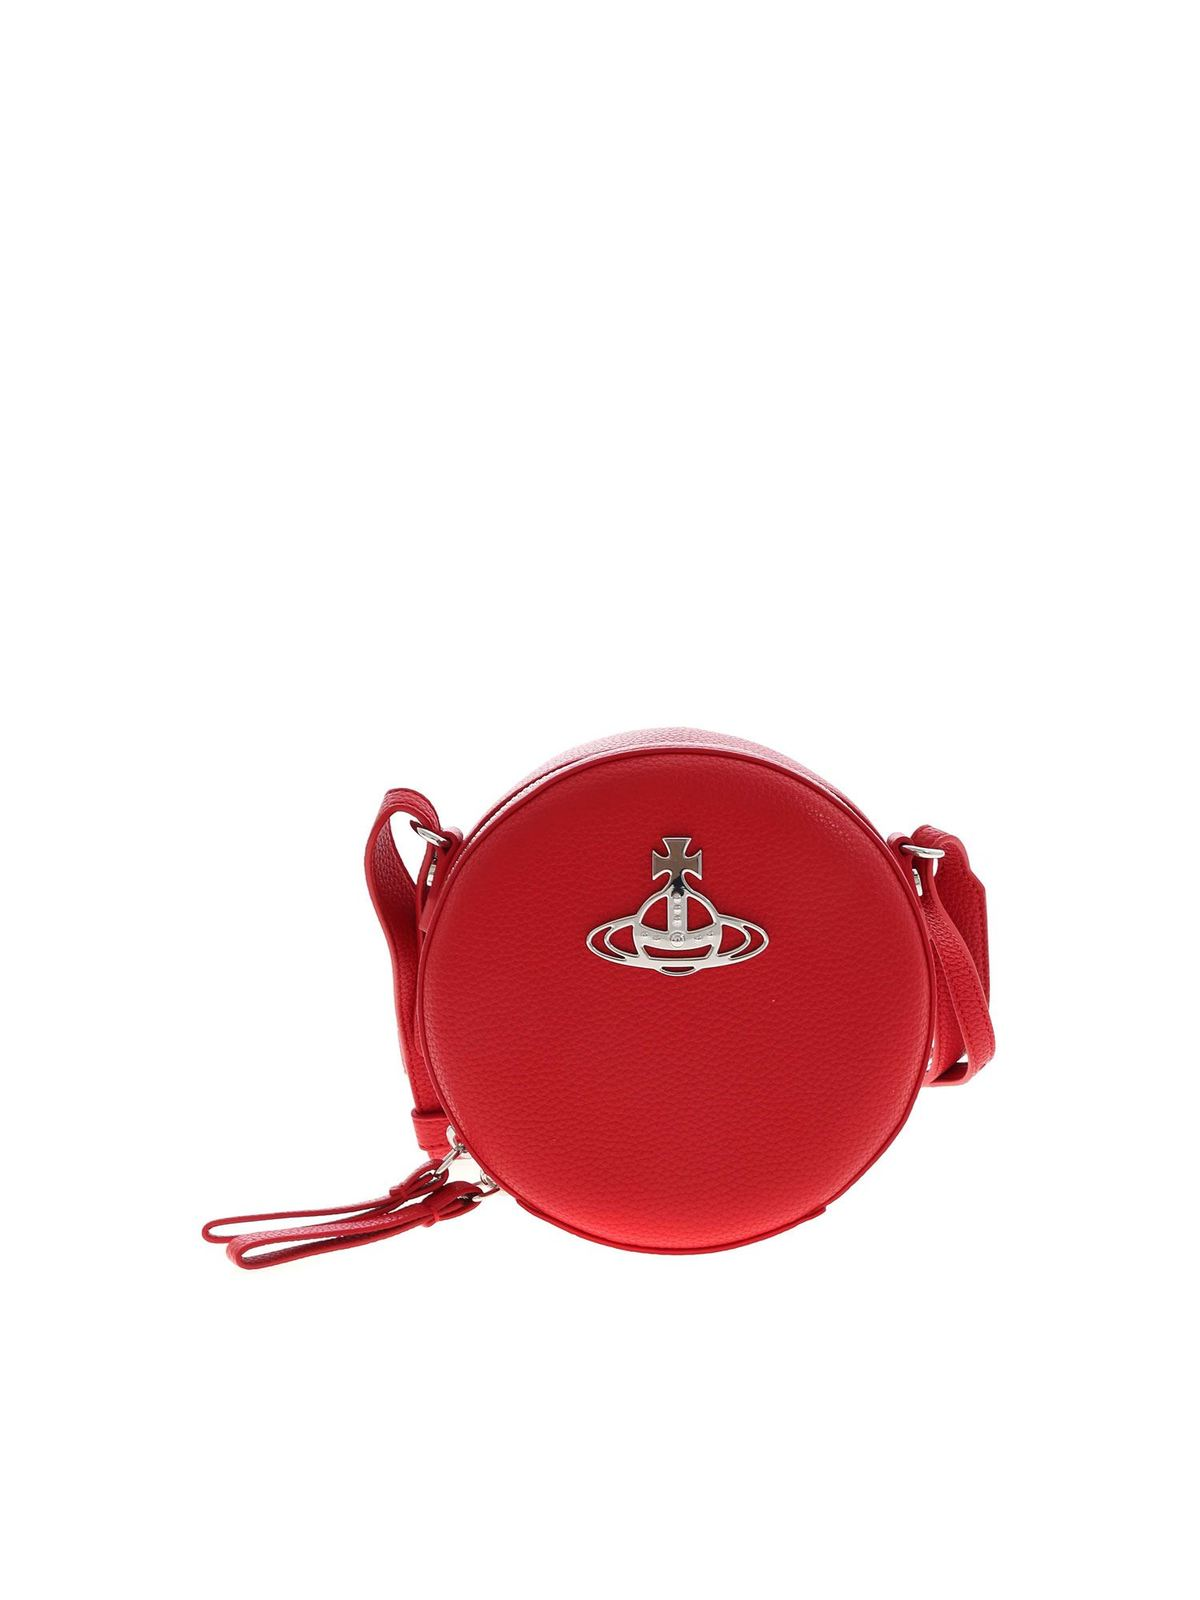 Vivienne Westwood JOHANNA ROUND CROSSBODY BAG IN RED